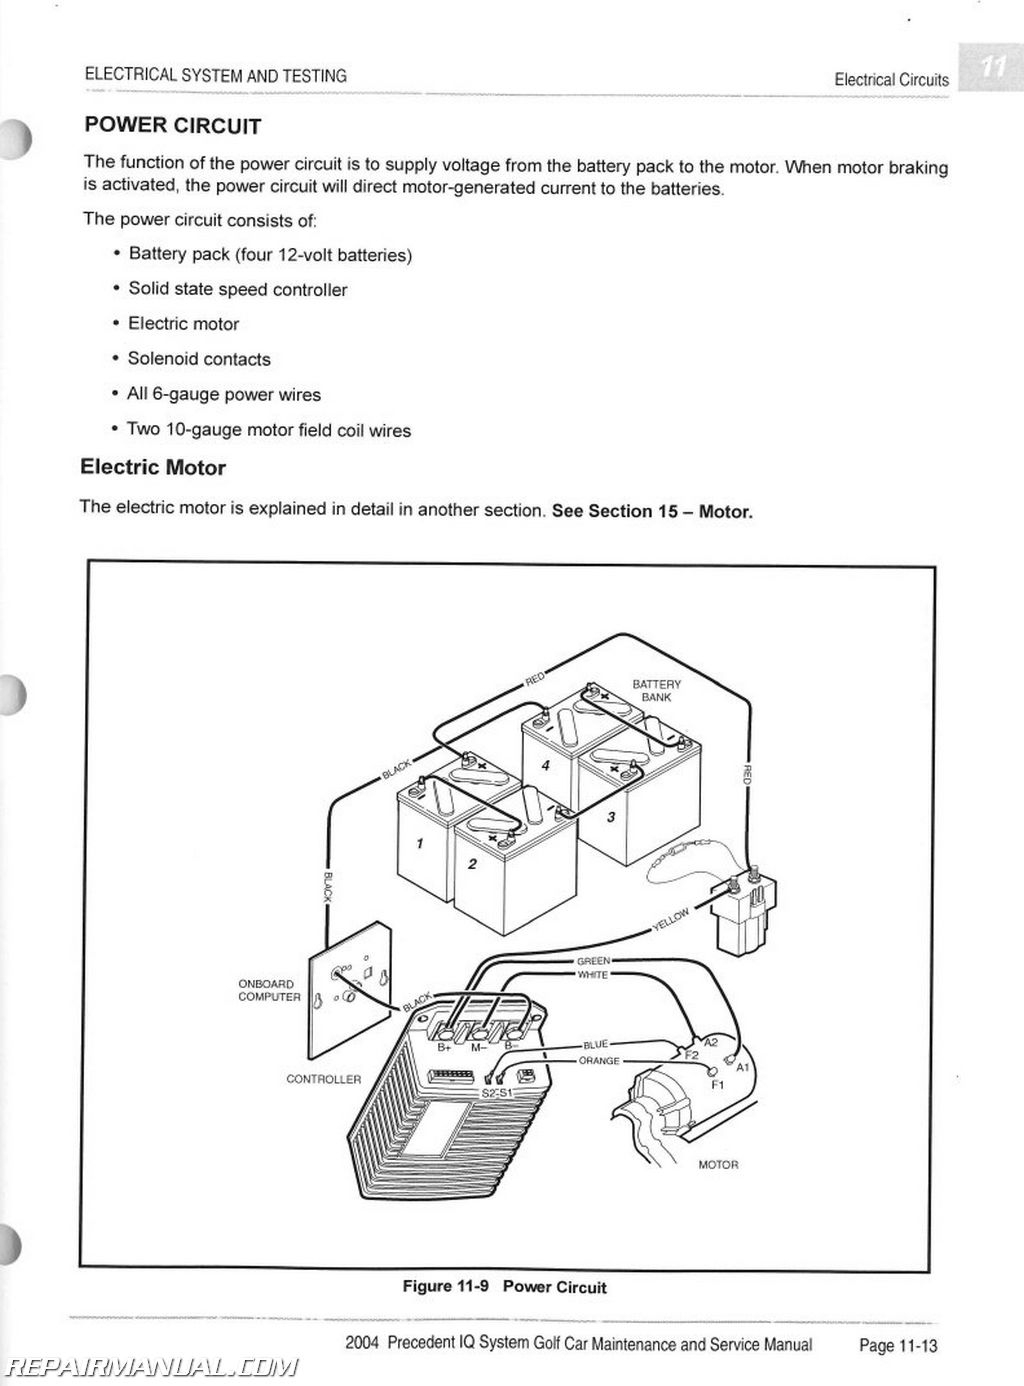 Club Car Precedent Battery Diagram | Manual E-Books - 2008 Club Car Precedent Wiring Diagram